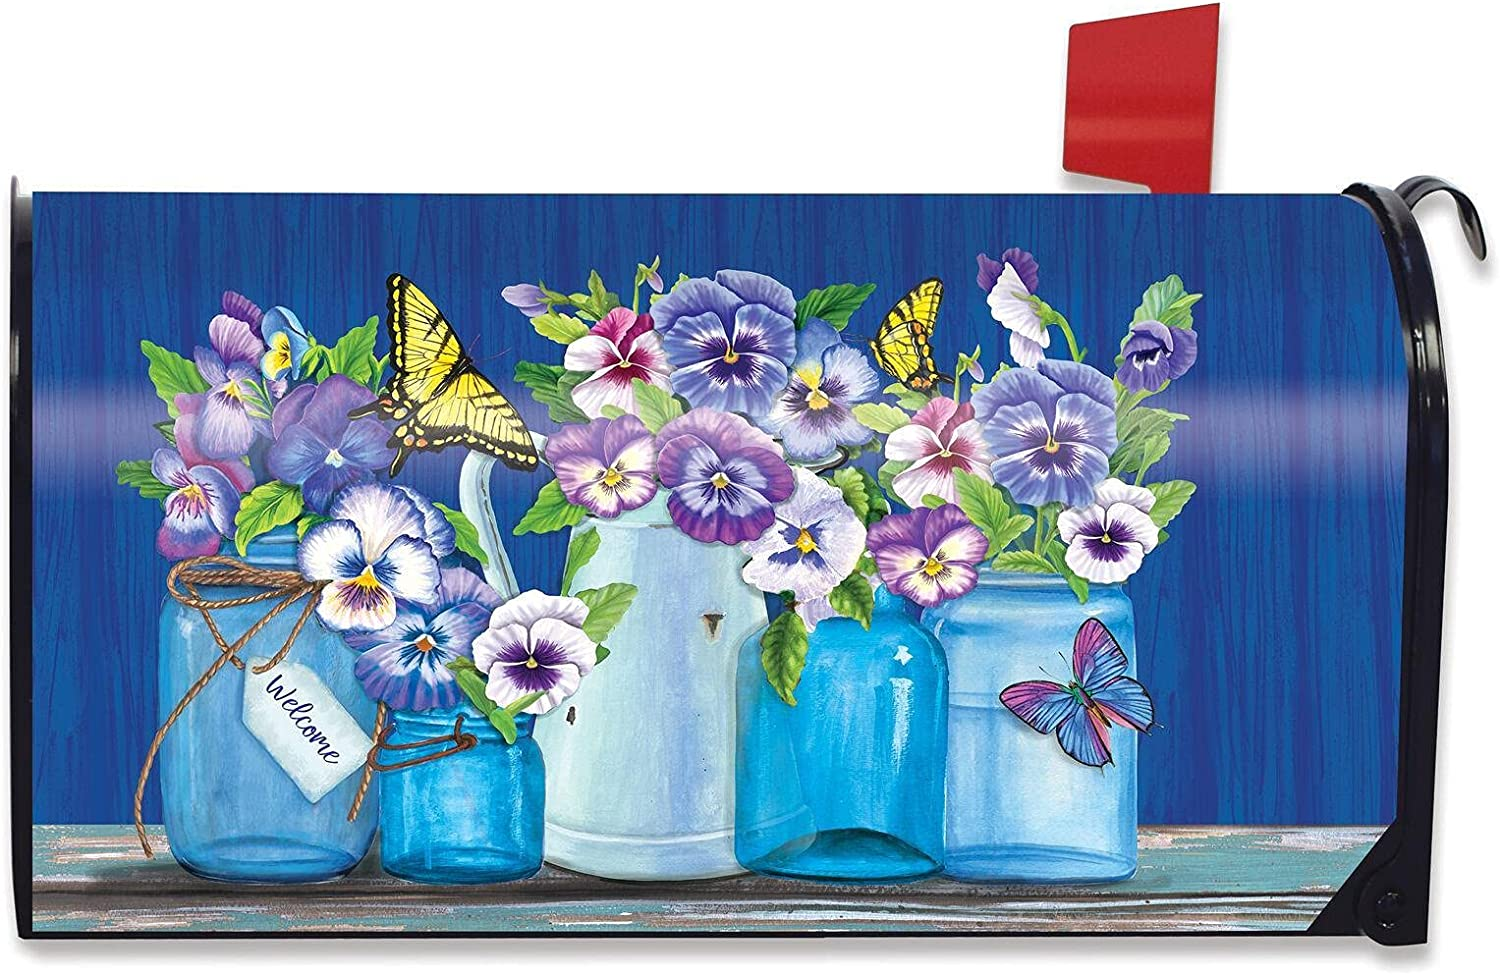 Spring new Now free shipping work Mailbox Cover Floral Standard Decor for Garden Mai